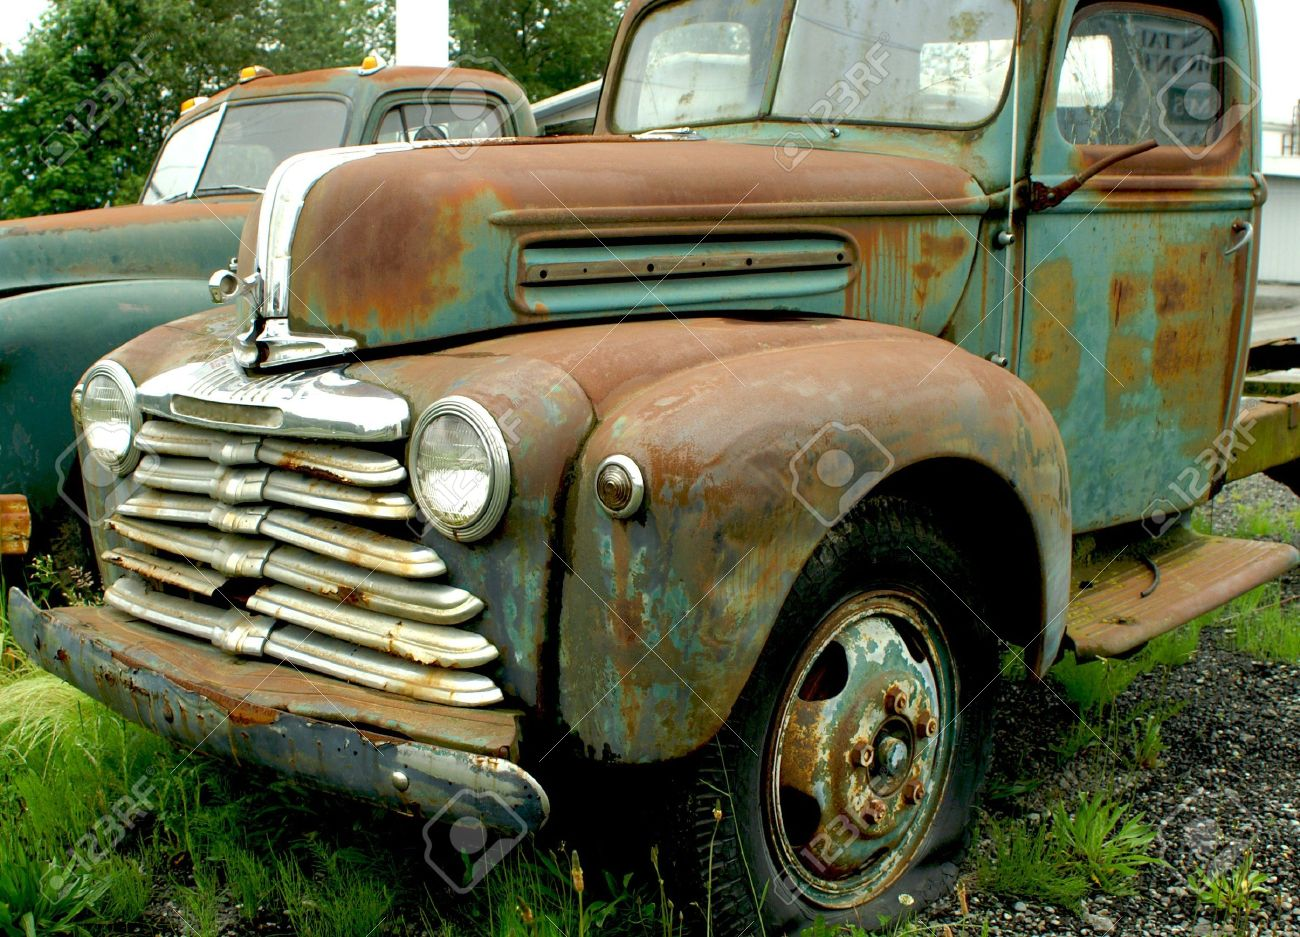 OLD RUSTED MERCURY TRUCK Stock Photo, Picture And Royalty Free Image ...